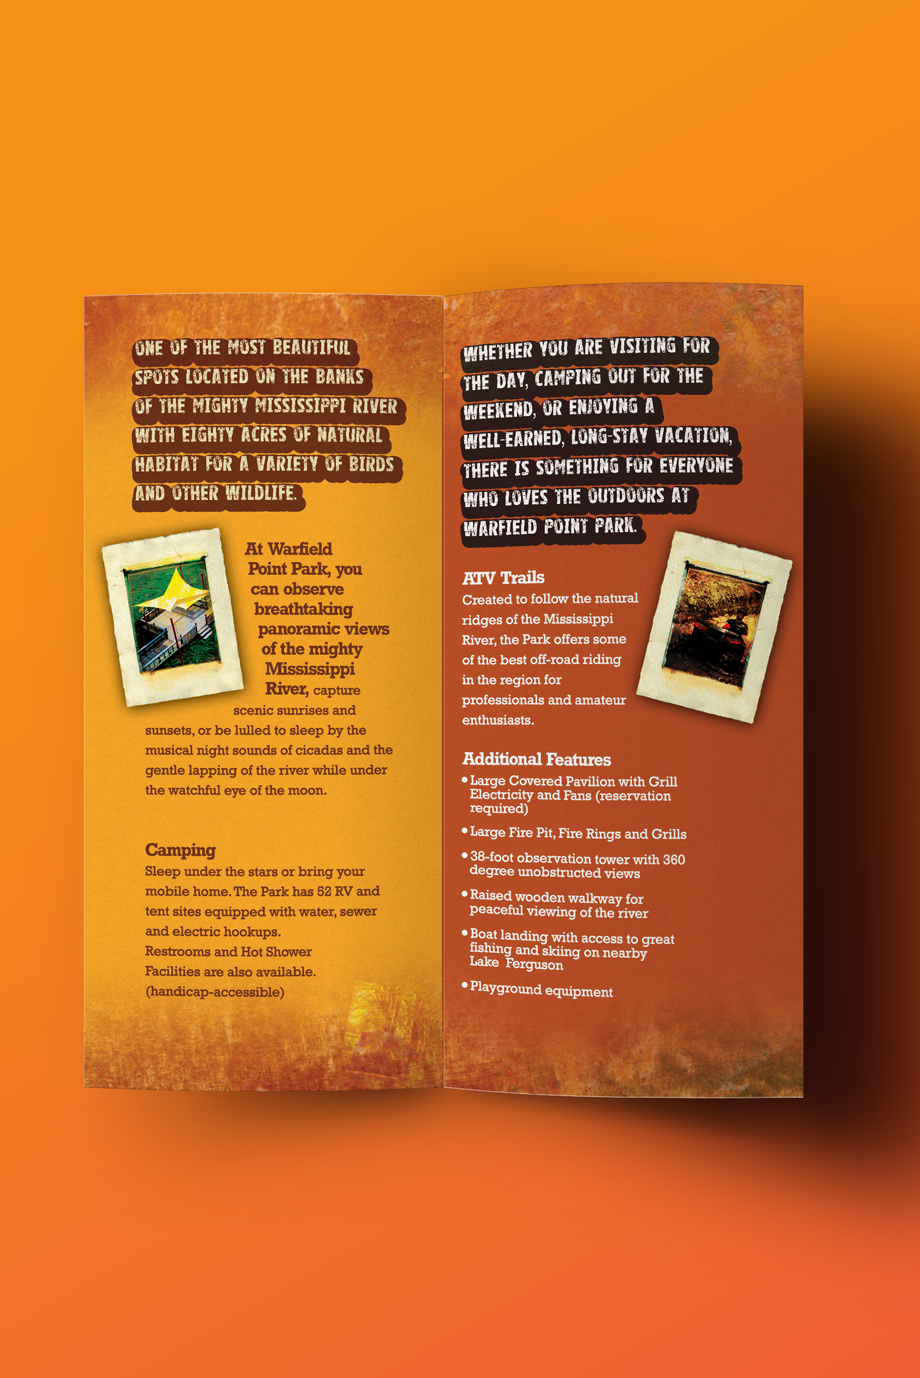 That Creative Guy. Warfield Point Park Brochure Design. brand expert. graphic design. web design in mississippi.